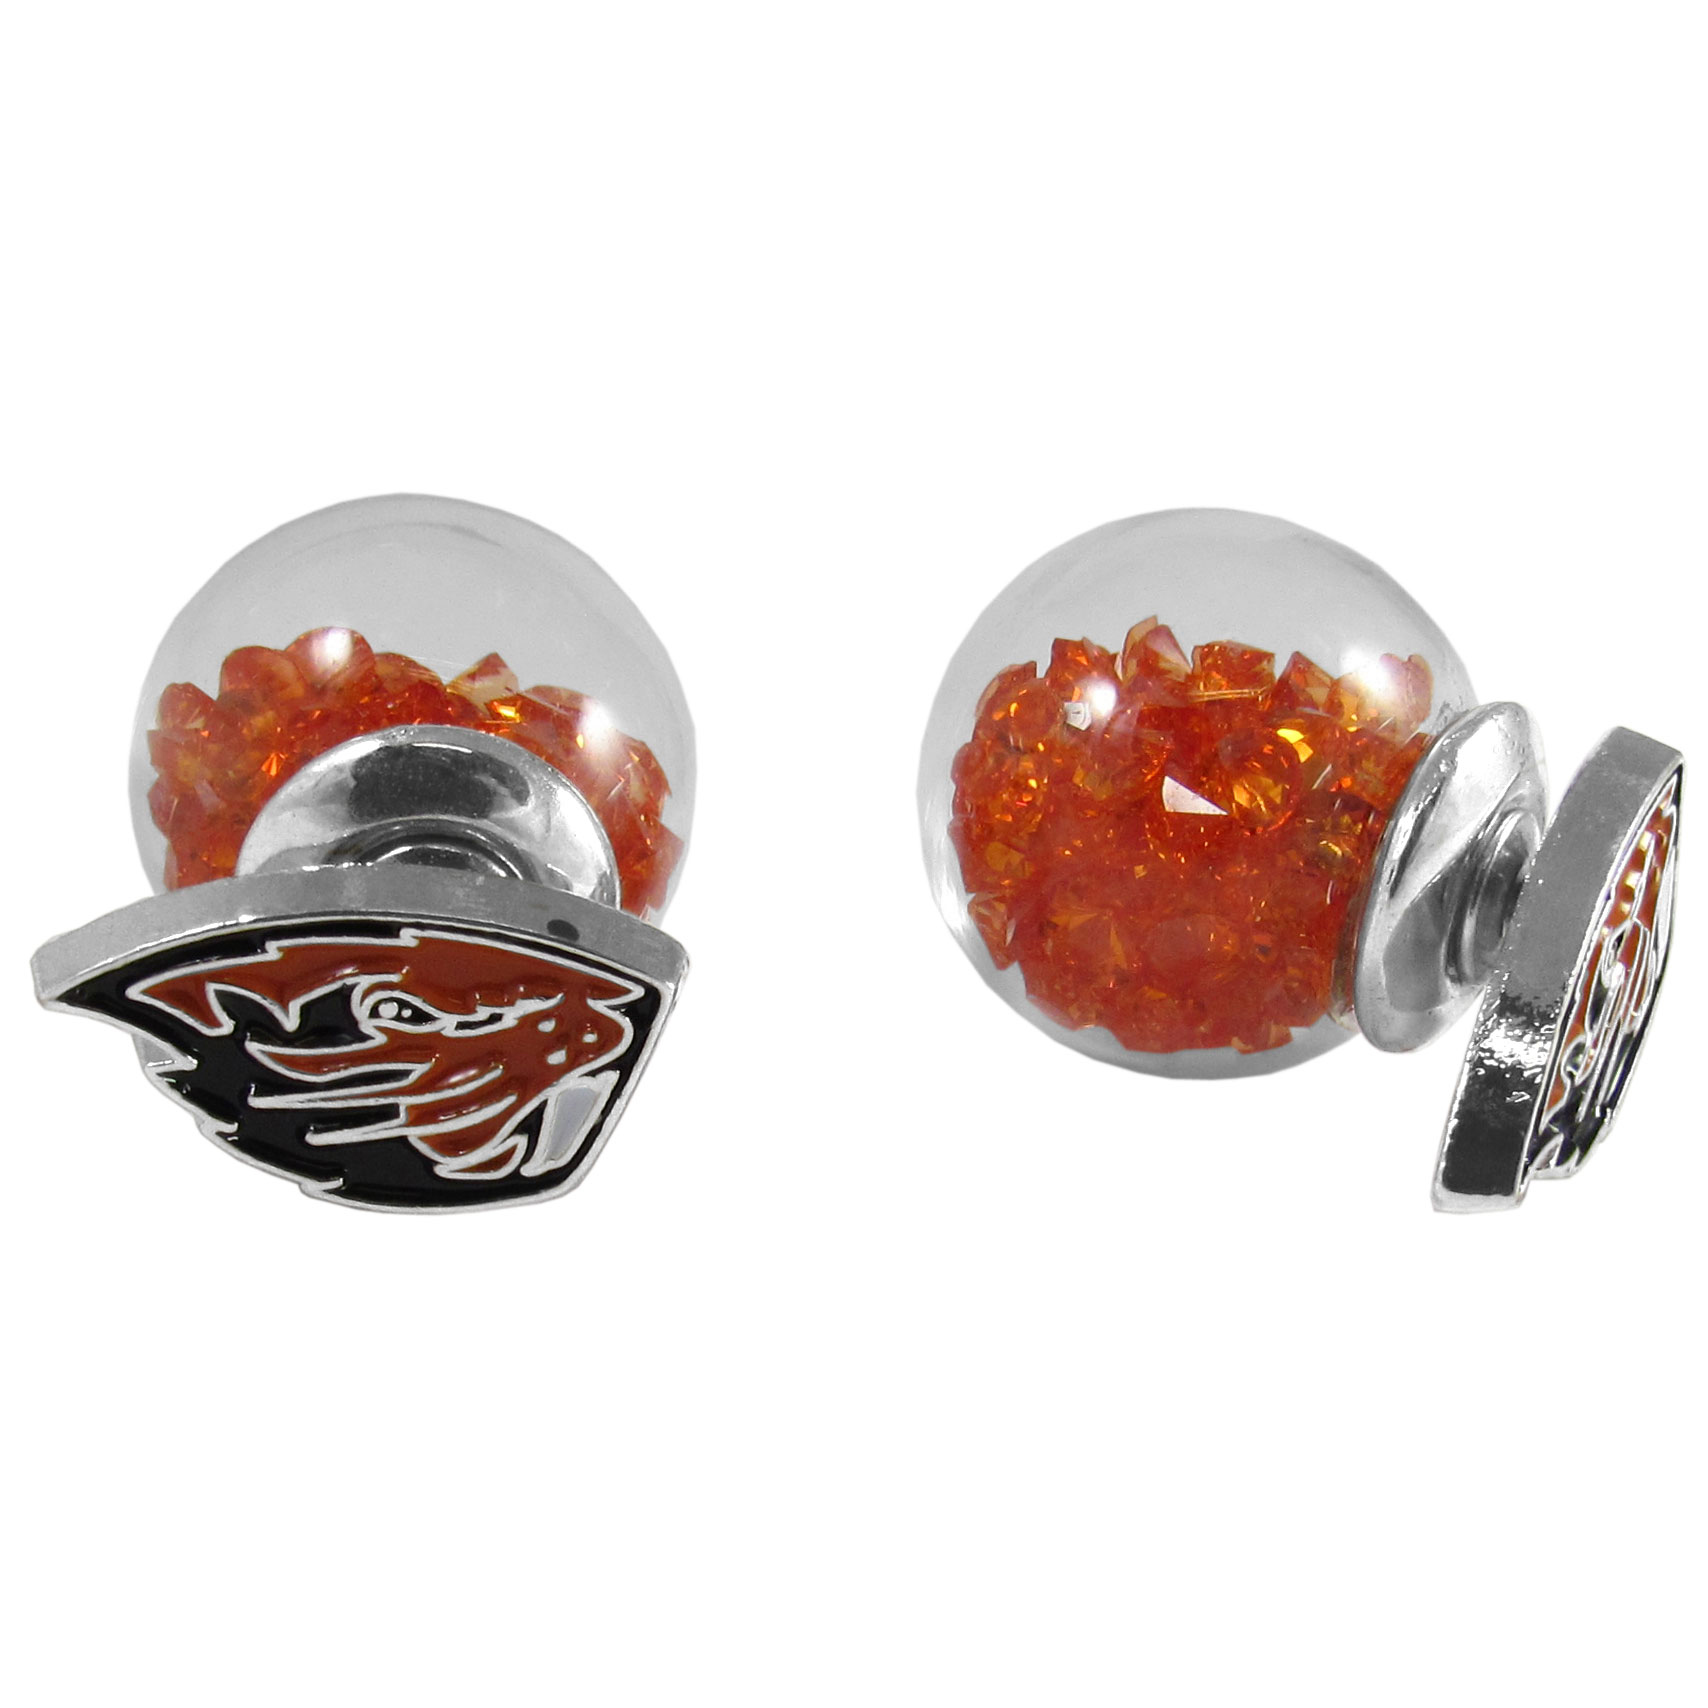 Oregon St. Beavers Front/Back Earrings - Get in on one of the most popular trends in jewelry, front and back earrings! This must-have style is all of over the red carpets and we taken this contemporary look and paired it with your love of the Oregon St. Beavers! The front of the earring is a sporty team logo and the back of these eye-catching earrings is a glass ball filled with colored crystal beads. This piece is perfect for a fashion-forward fan, with bold taste and trend-setting style.